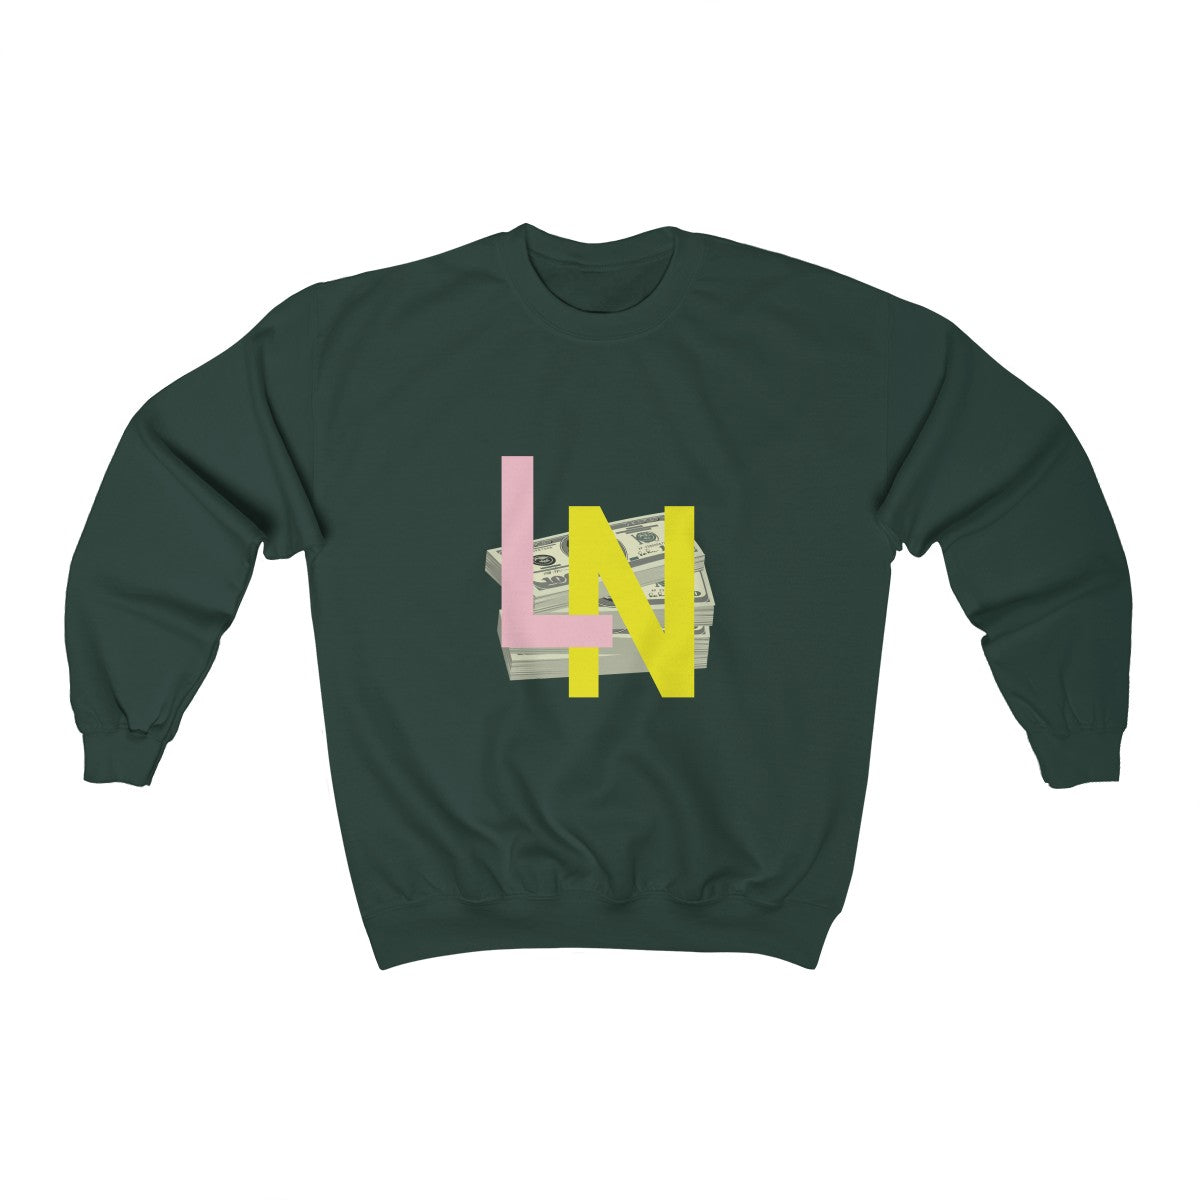 Liddlenique Sweatshirt